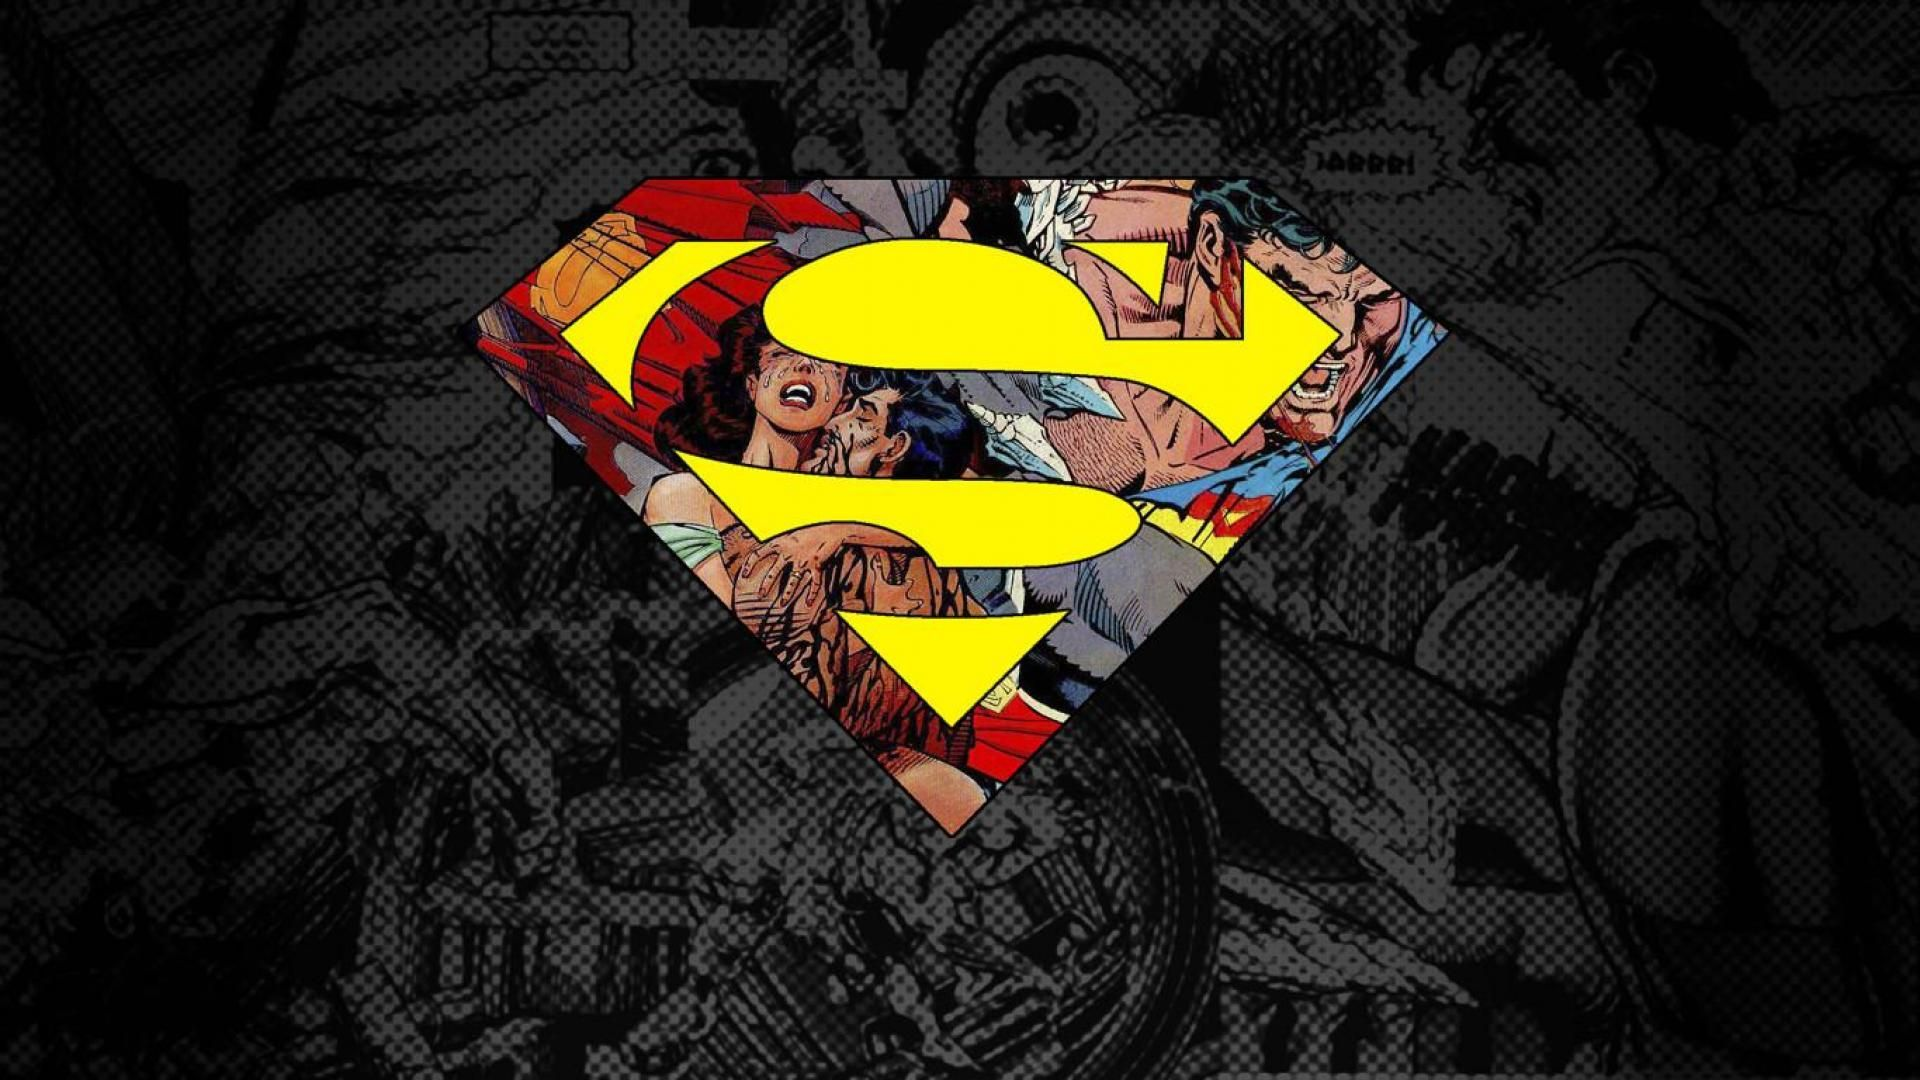 best superman wallpaper, super man wallpaper